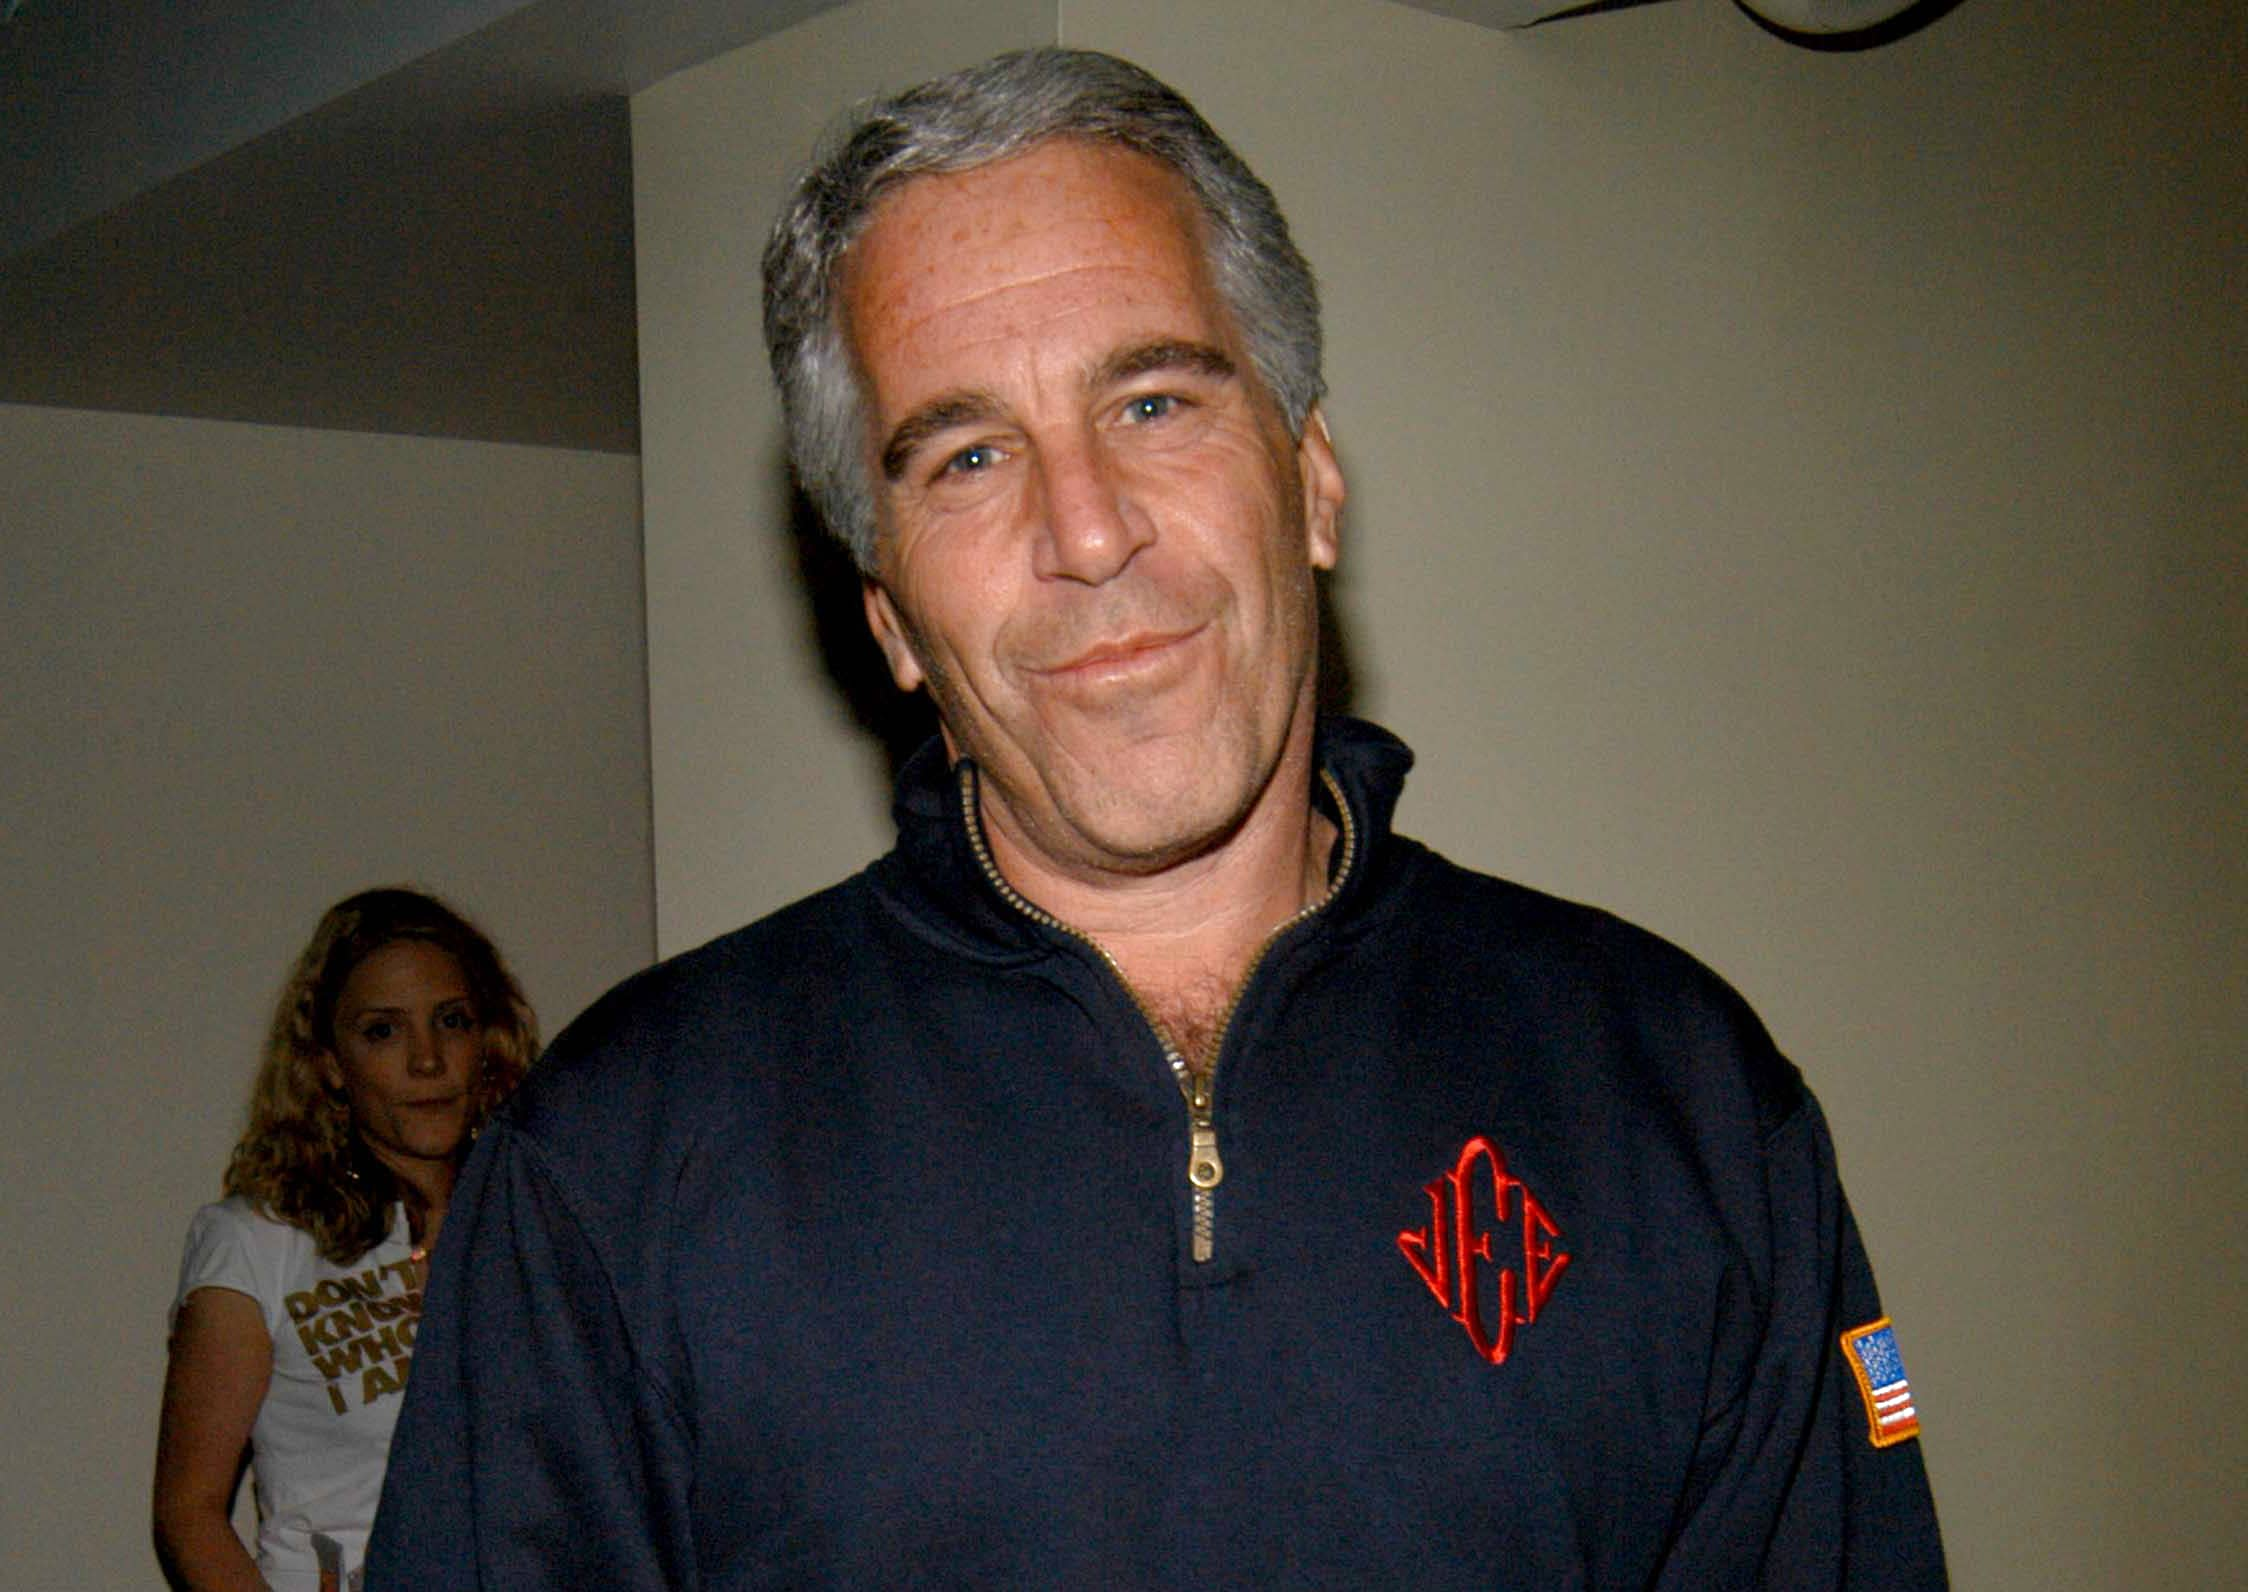 Prosecutors move to drop Jeffrey Epstein's charges, but vow to keep investigating